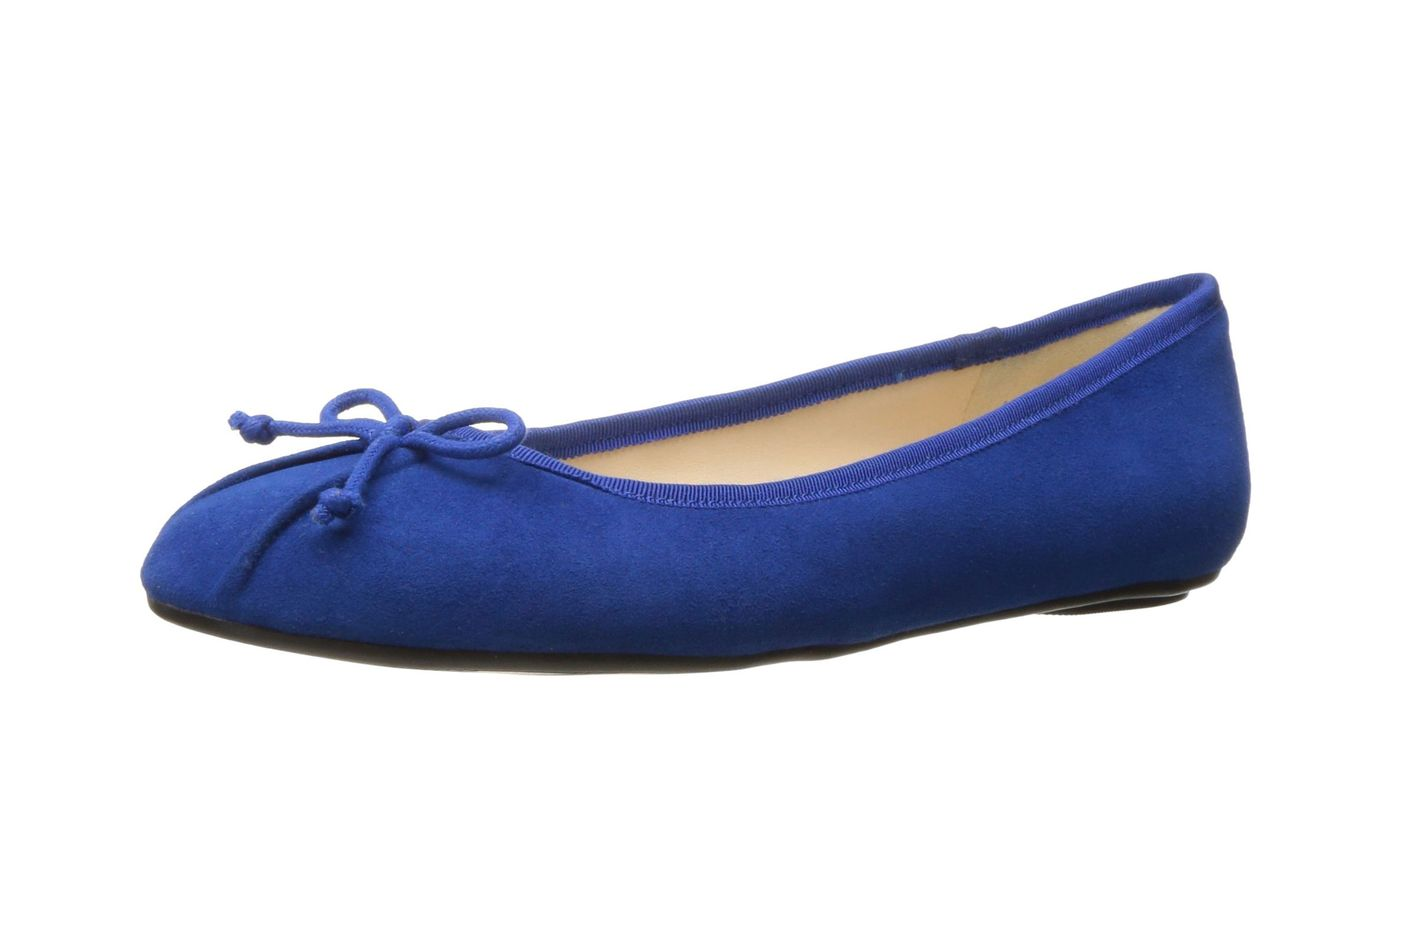 Nine West Women's Batoka Suede Ballet Flat